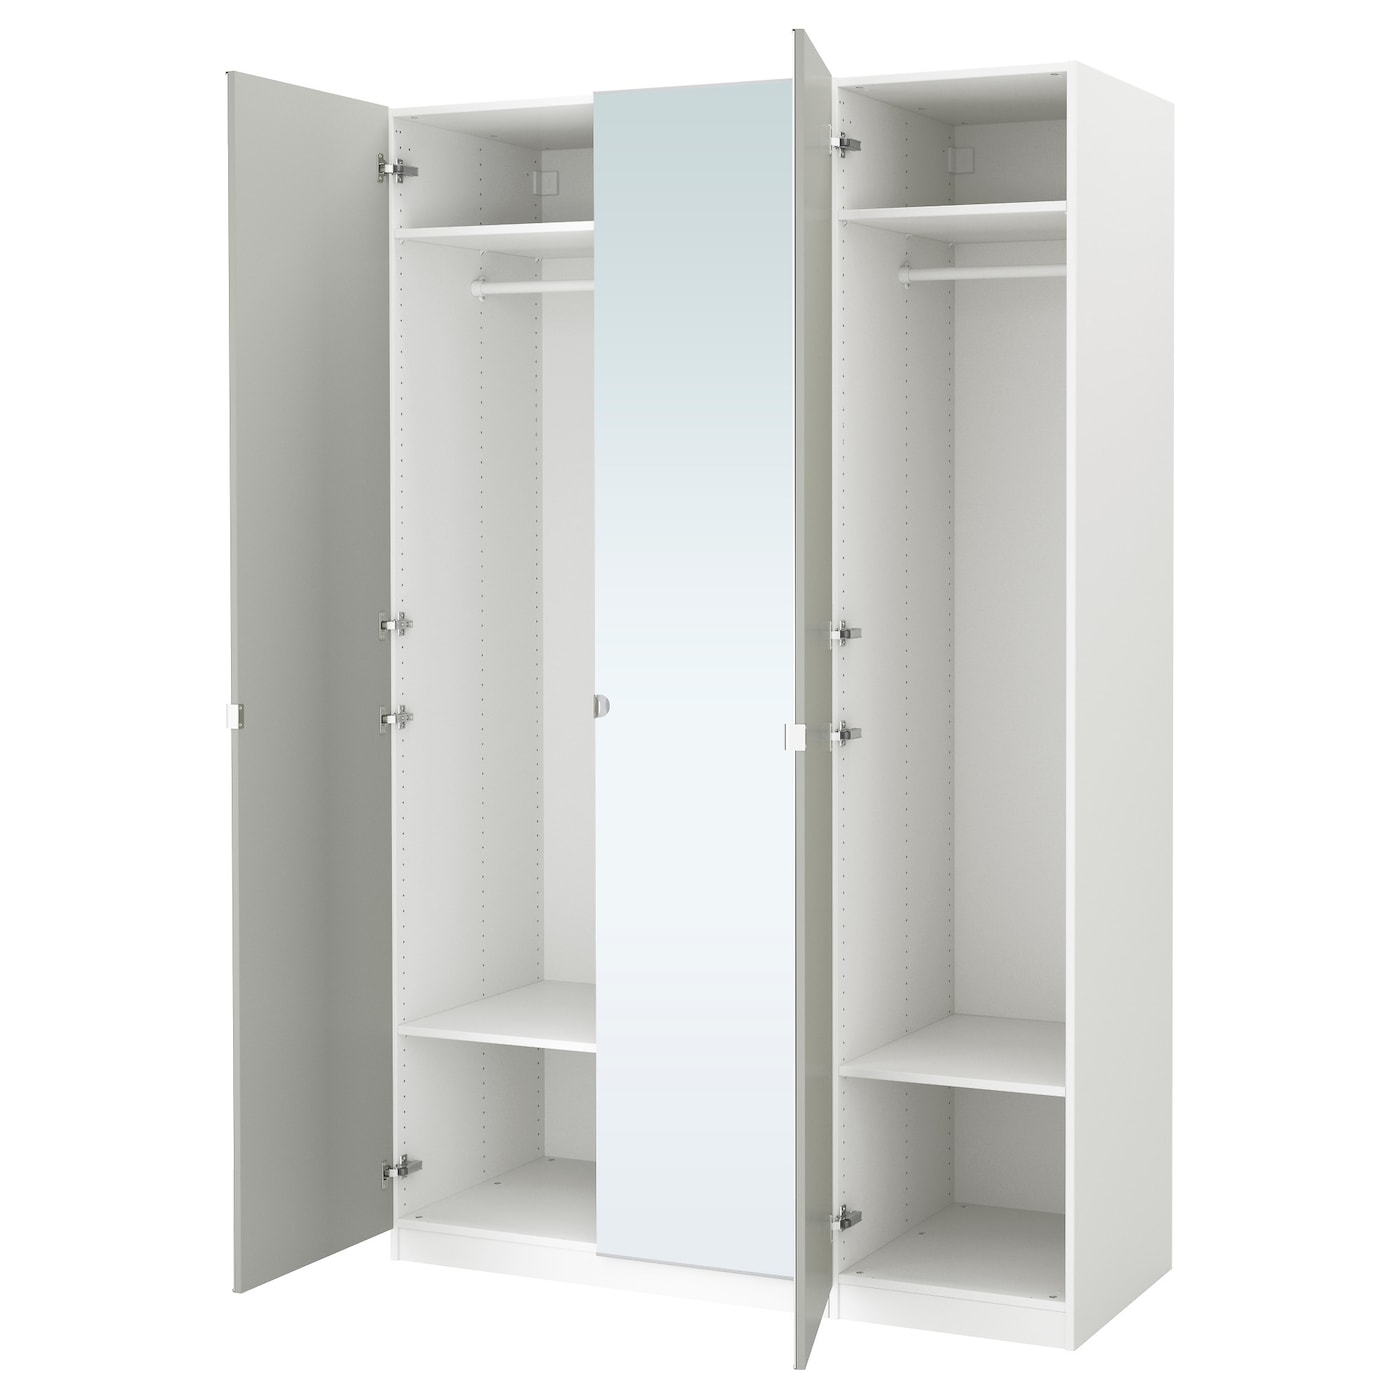 Pax wardrobe white vikedal mirror glass 150x60x236 cm ikea for Armoire une personne